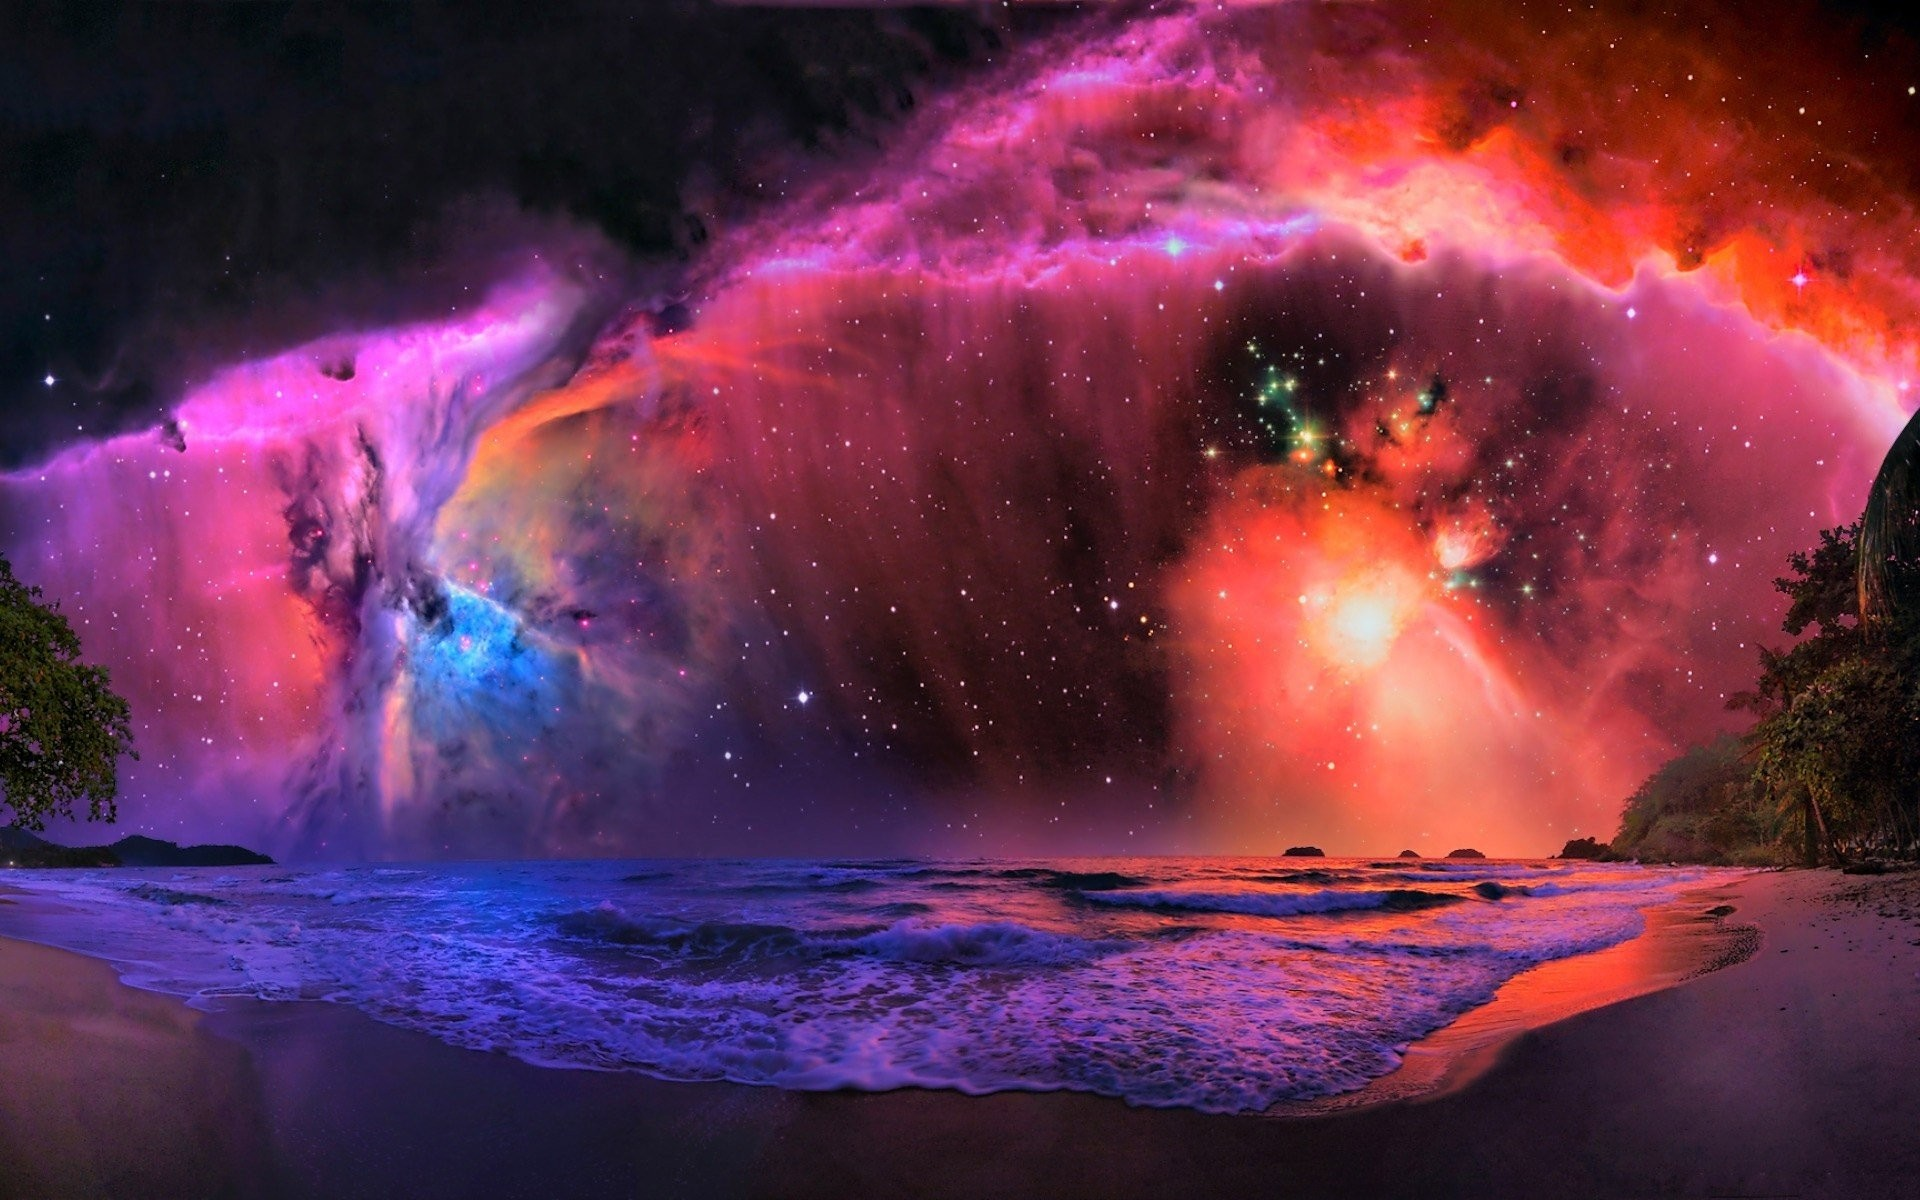 Wallpapers scenery pixel twitter high wallpaper tides galaxies galaxy large.